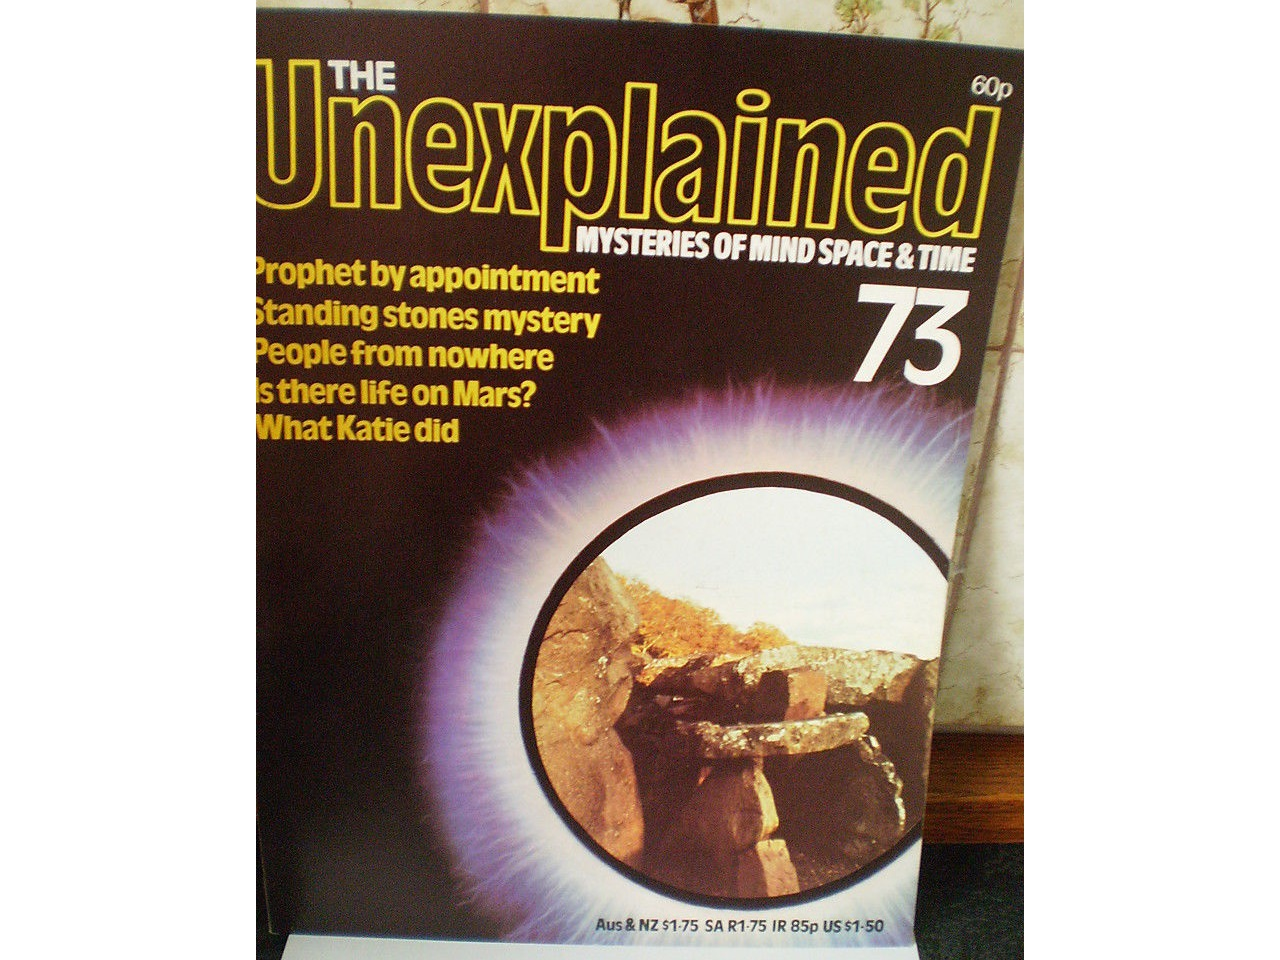 The Unexplained - Mysteries of Mind, Space and Time